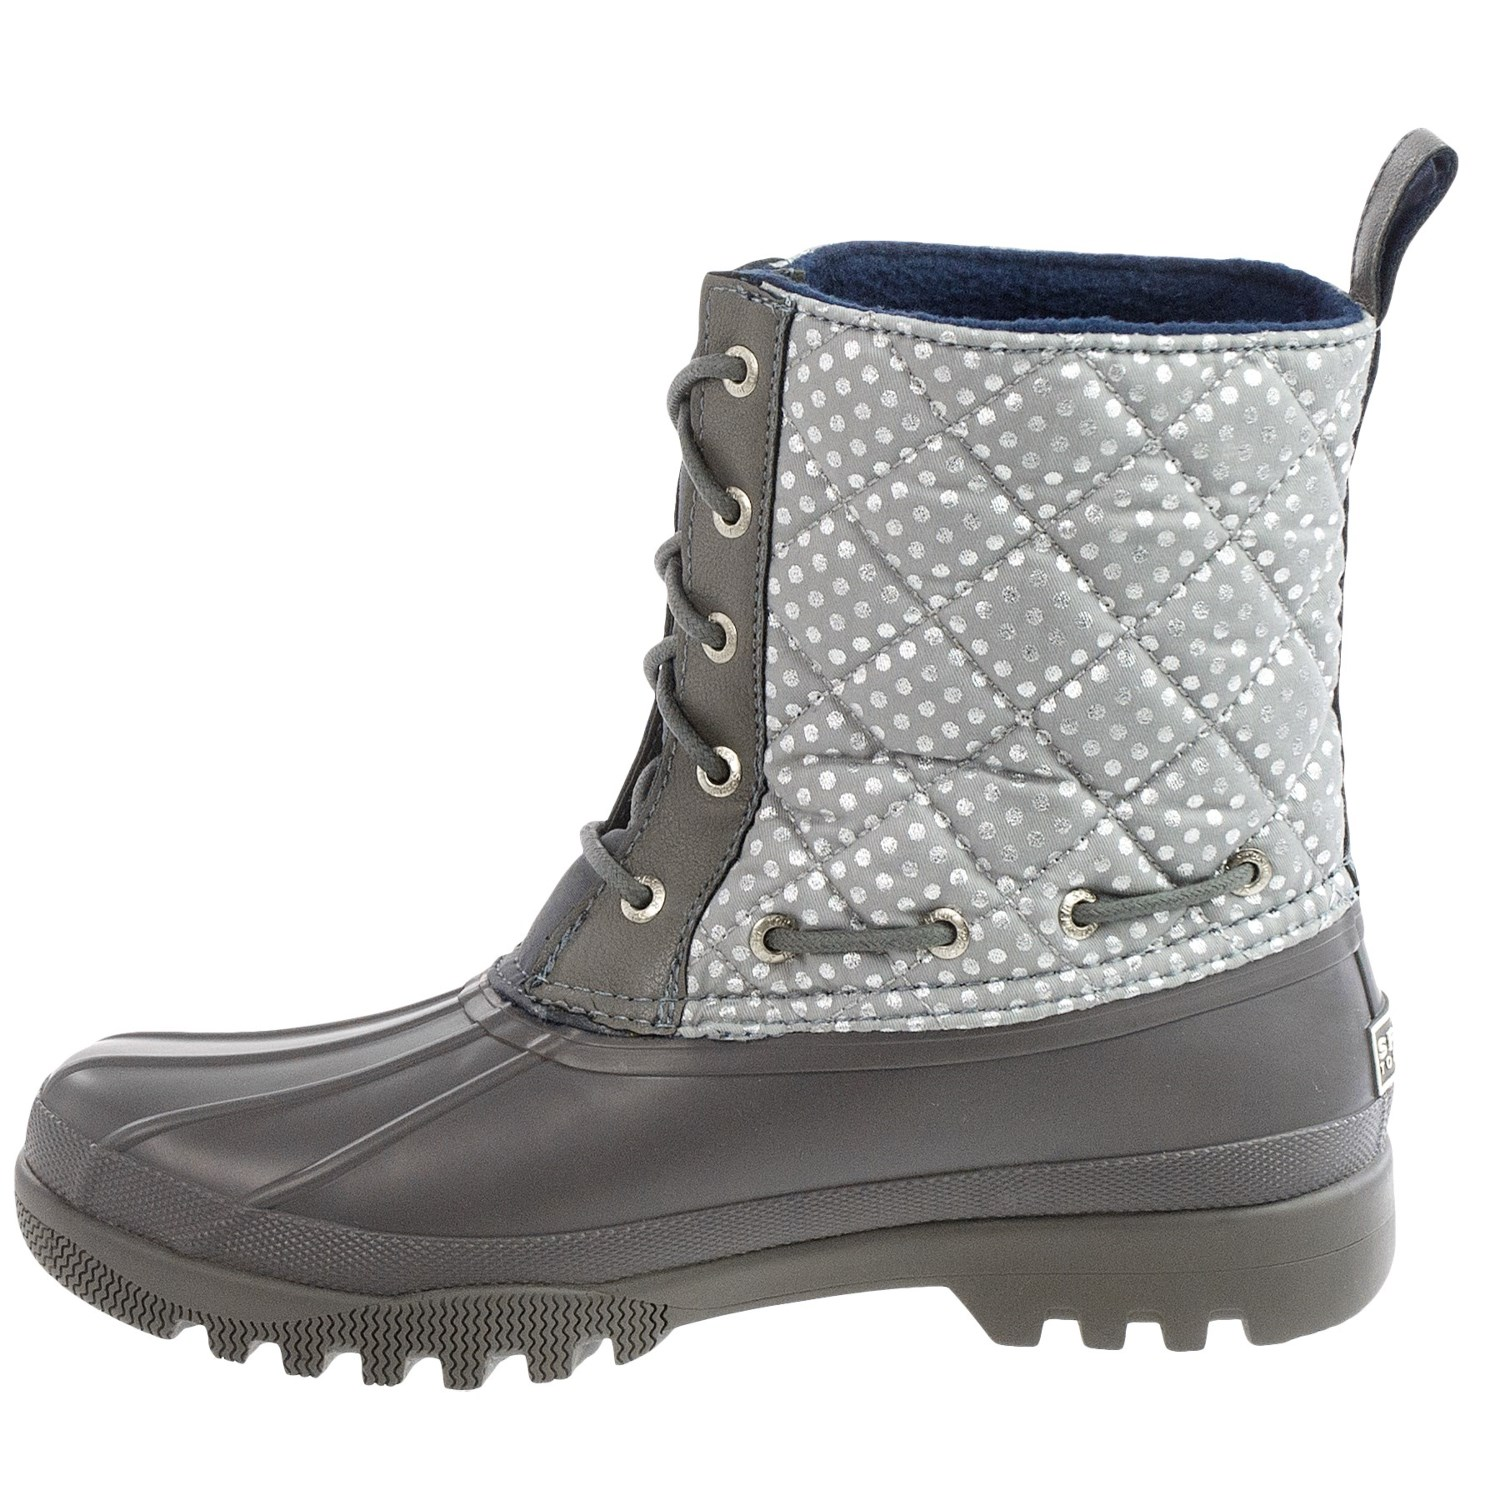 New Sperry Saltwater Waterproof Duck Boots  Dillards